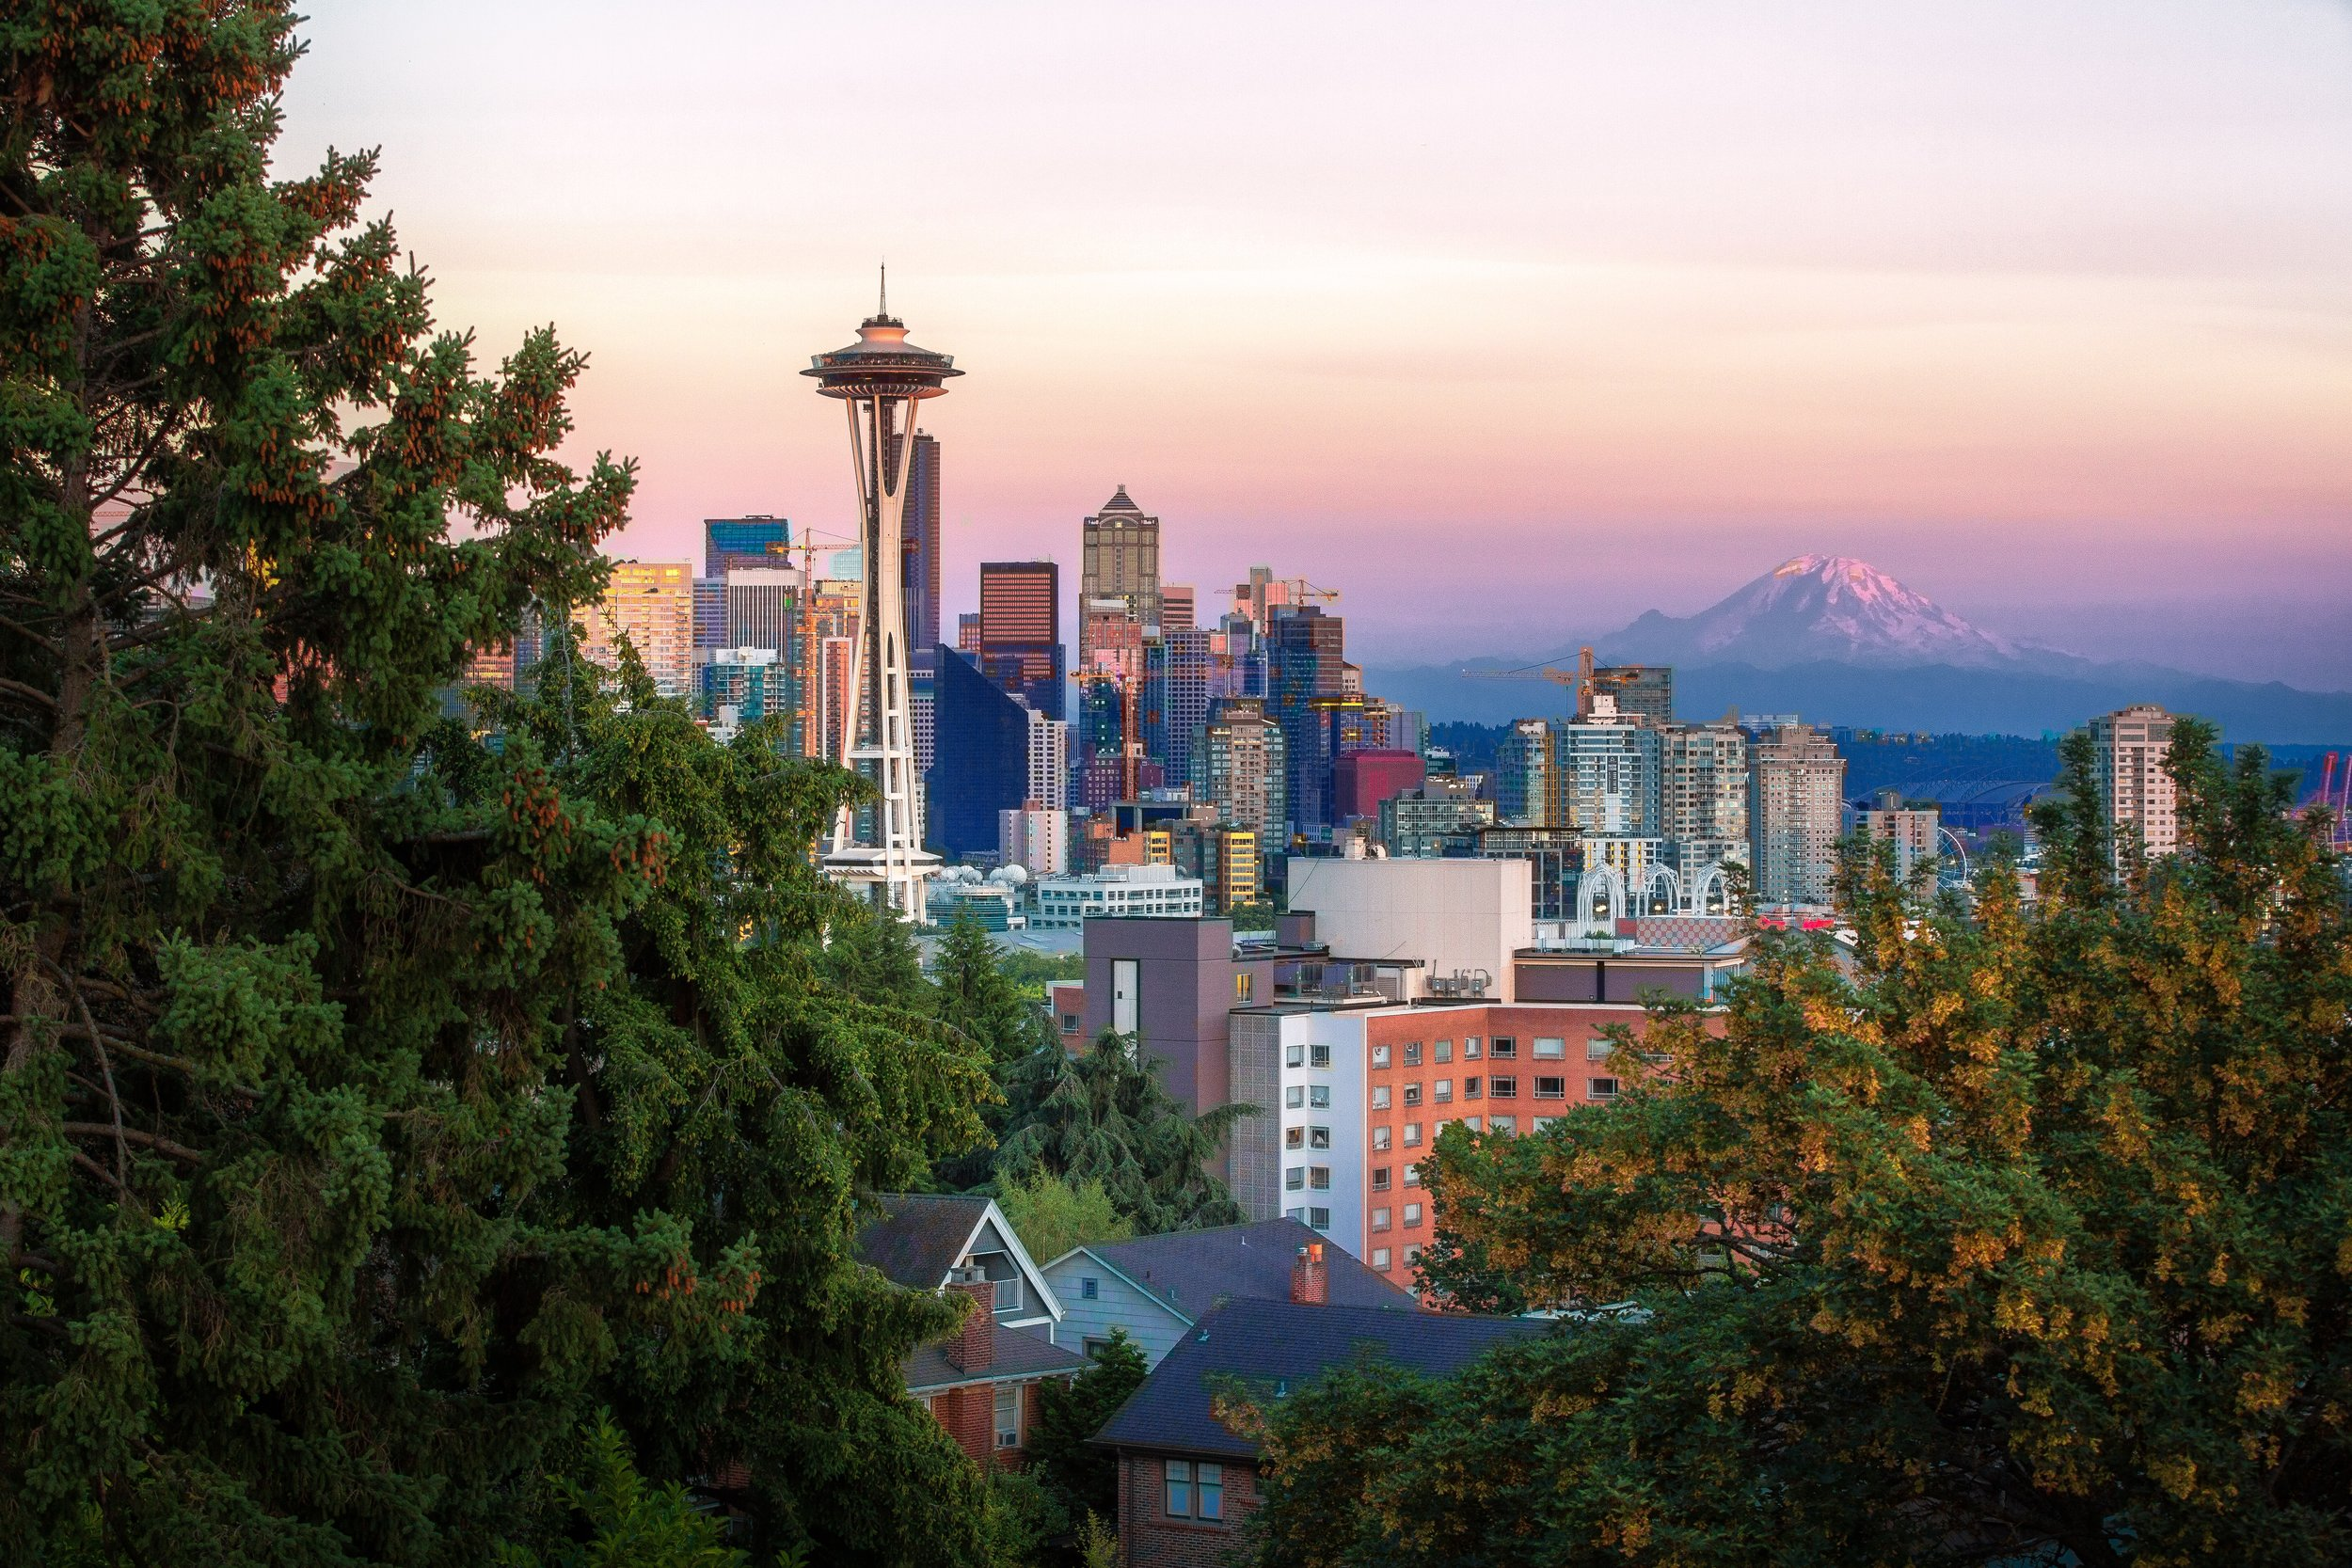 A move to Seattle - Life's great adventures are often unplanned. When Katie's husband landed a job at one of the world's largest tech companies, she knew that her venture would start sooner than anticipated. She embraced Seattle's entrepreneurial spirit and officially launched the company, Golf Globally.